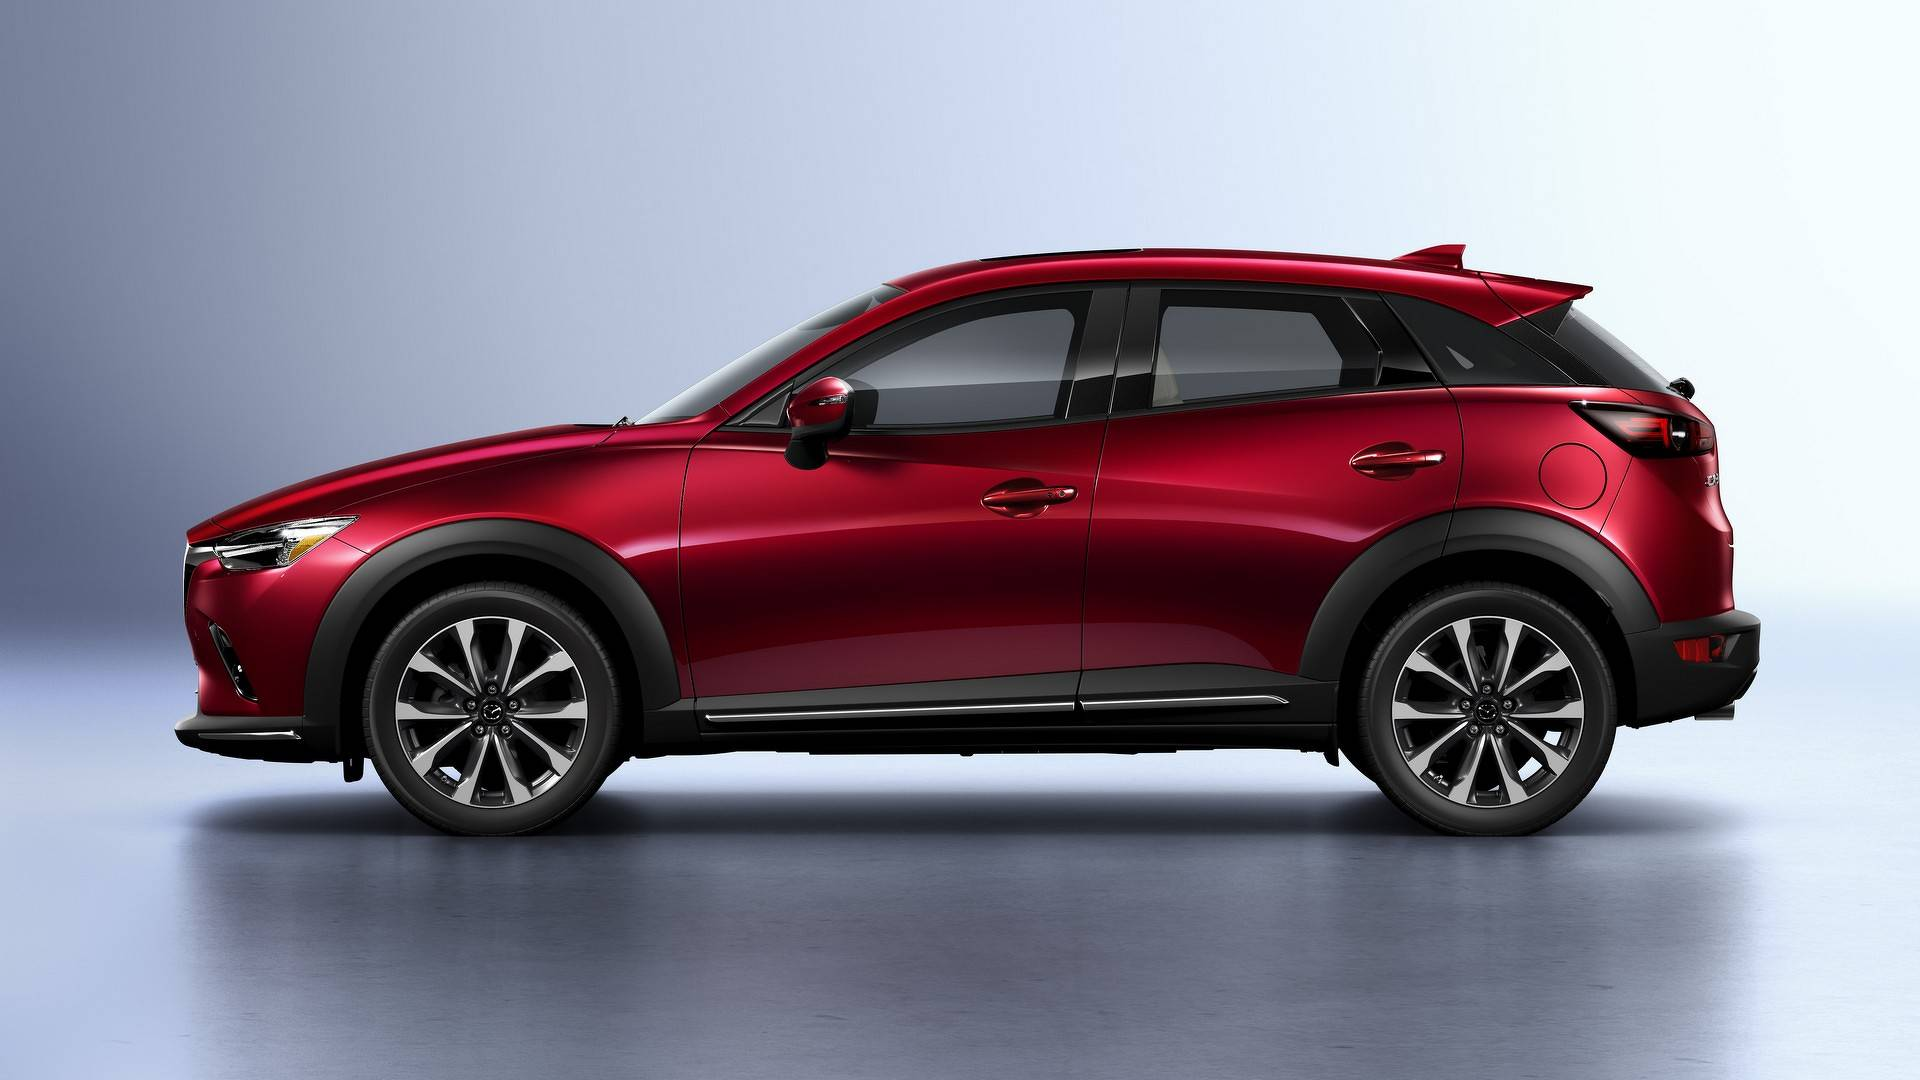 ro-ri-thong-tin-bat-ngo-ve-mazda-cx-3-the-he-moi